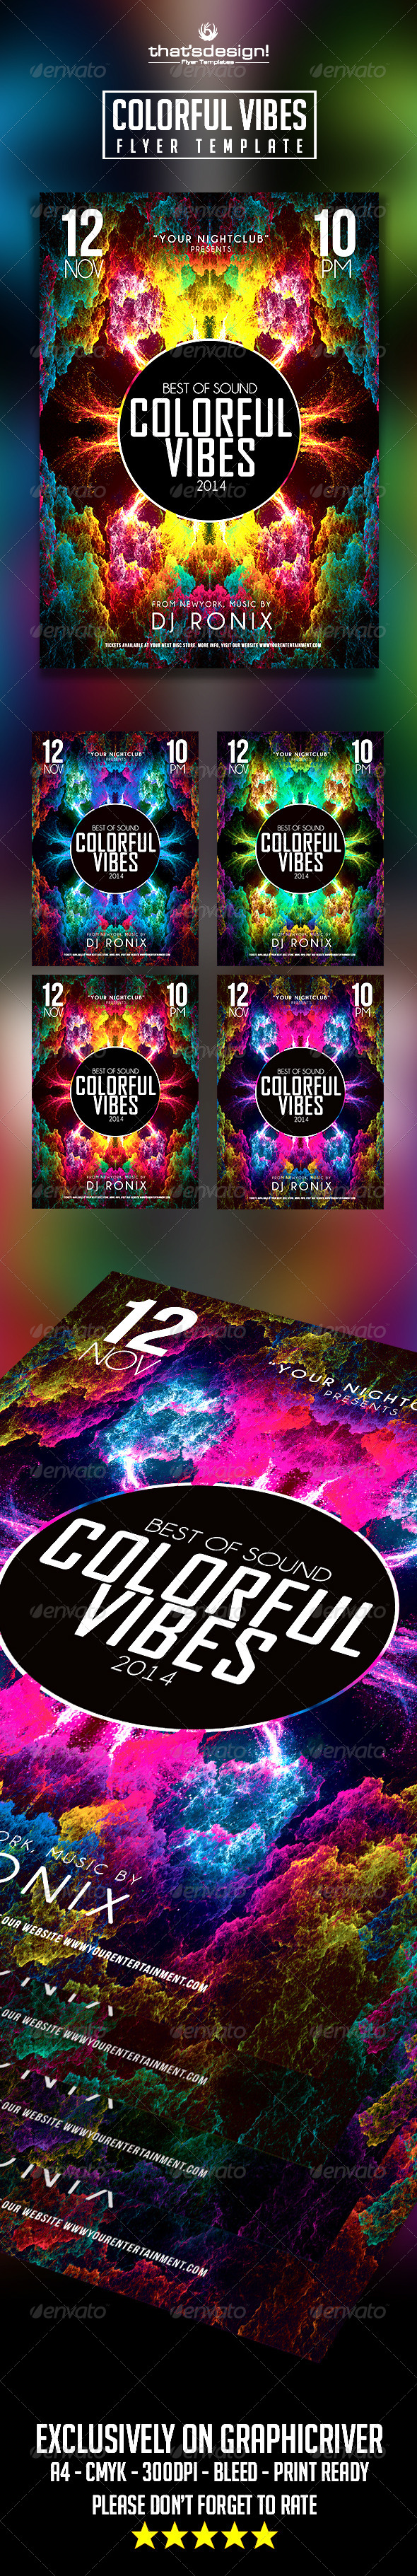 Colorful Vibes Flyer Template - Clubs & Parties Events